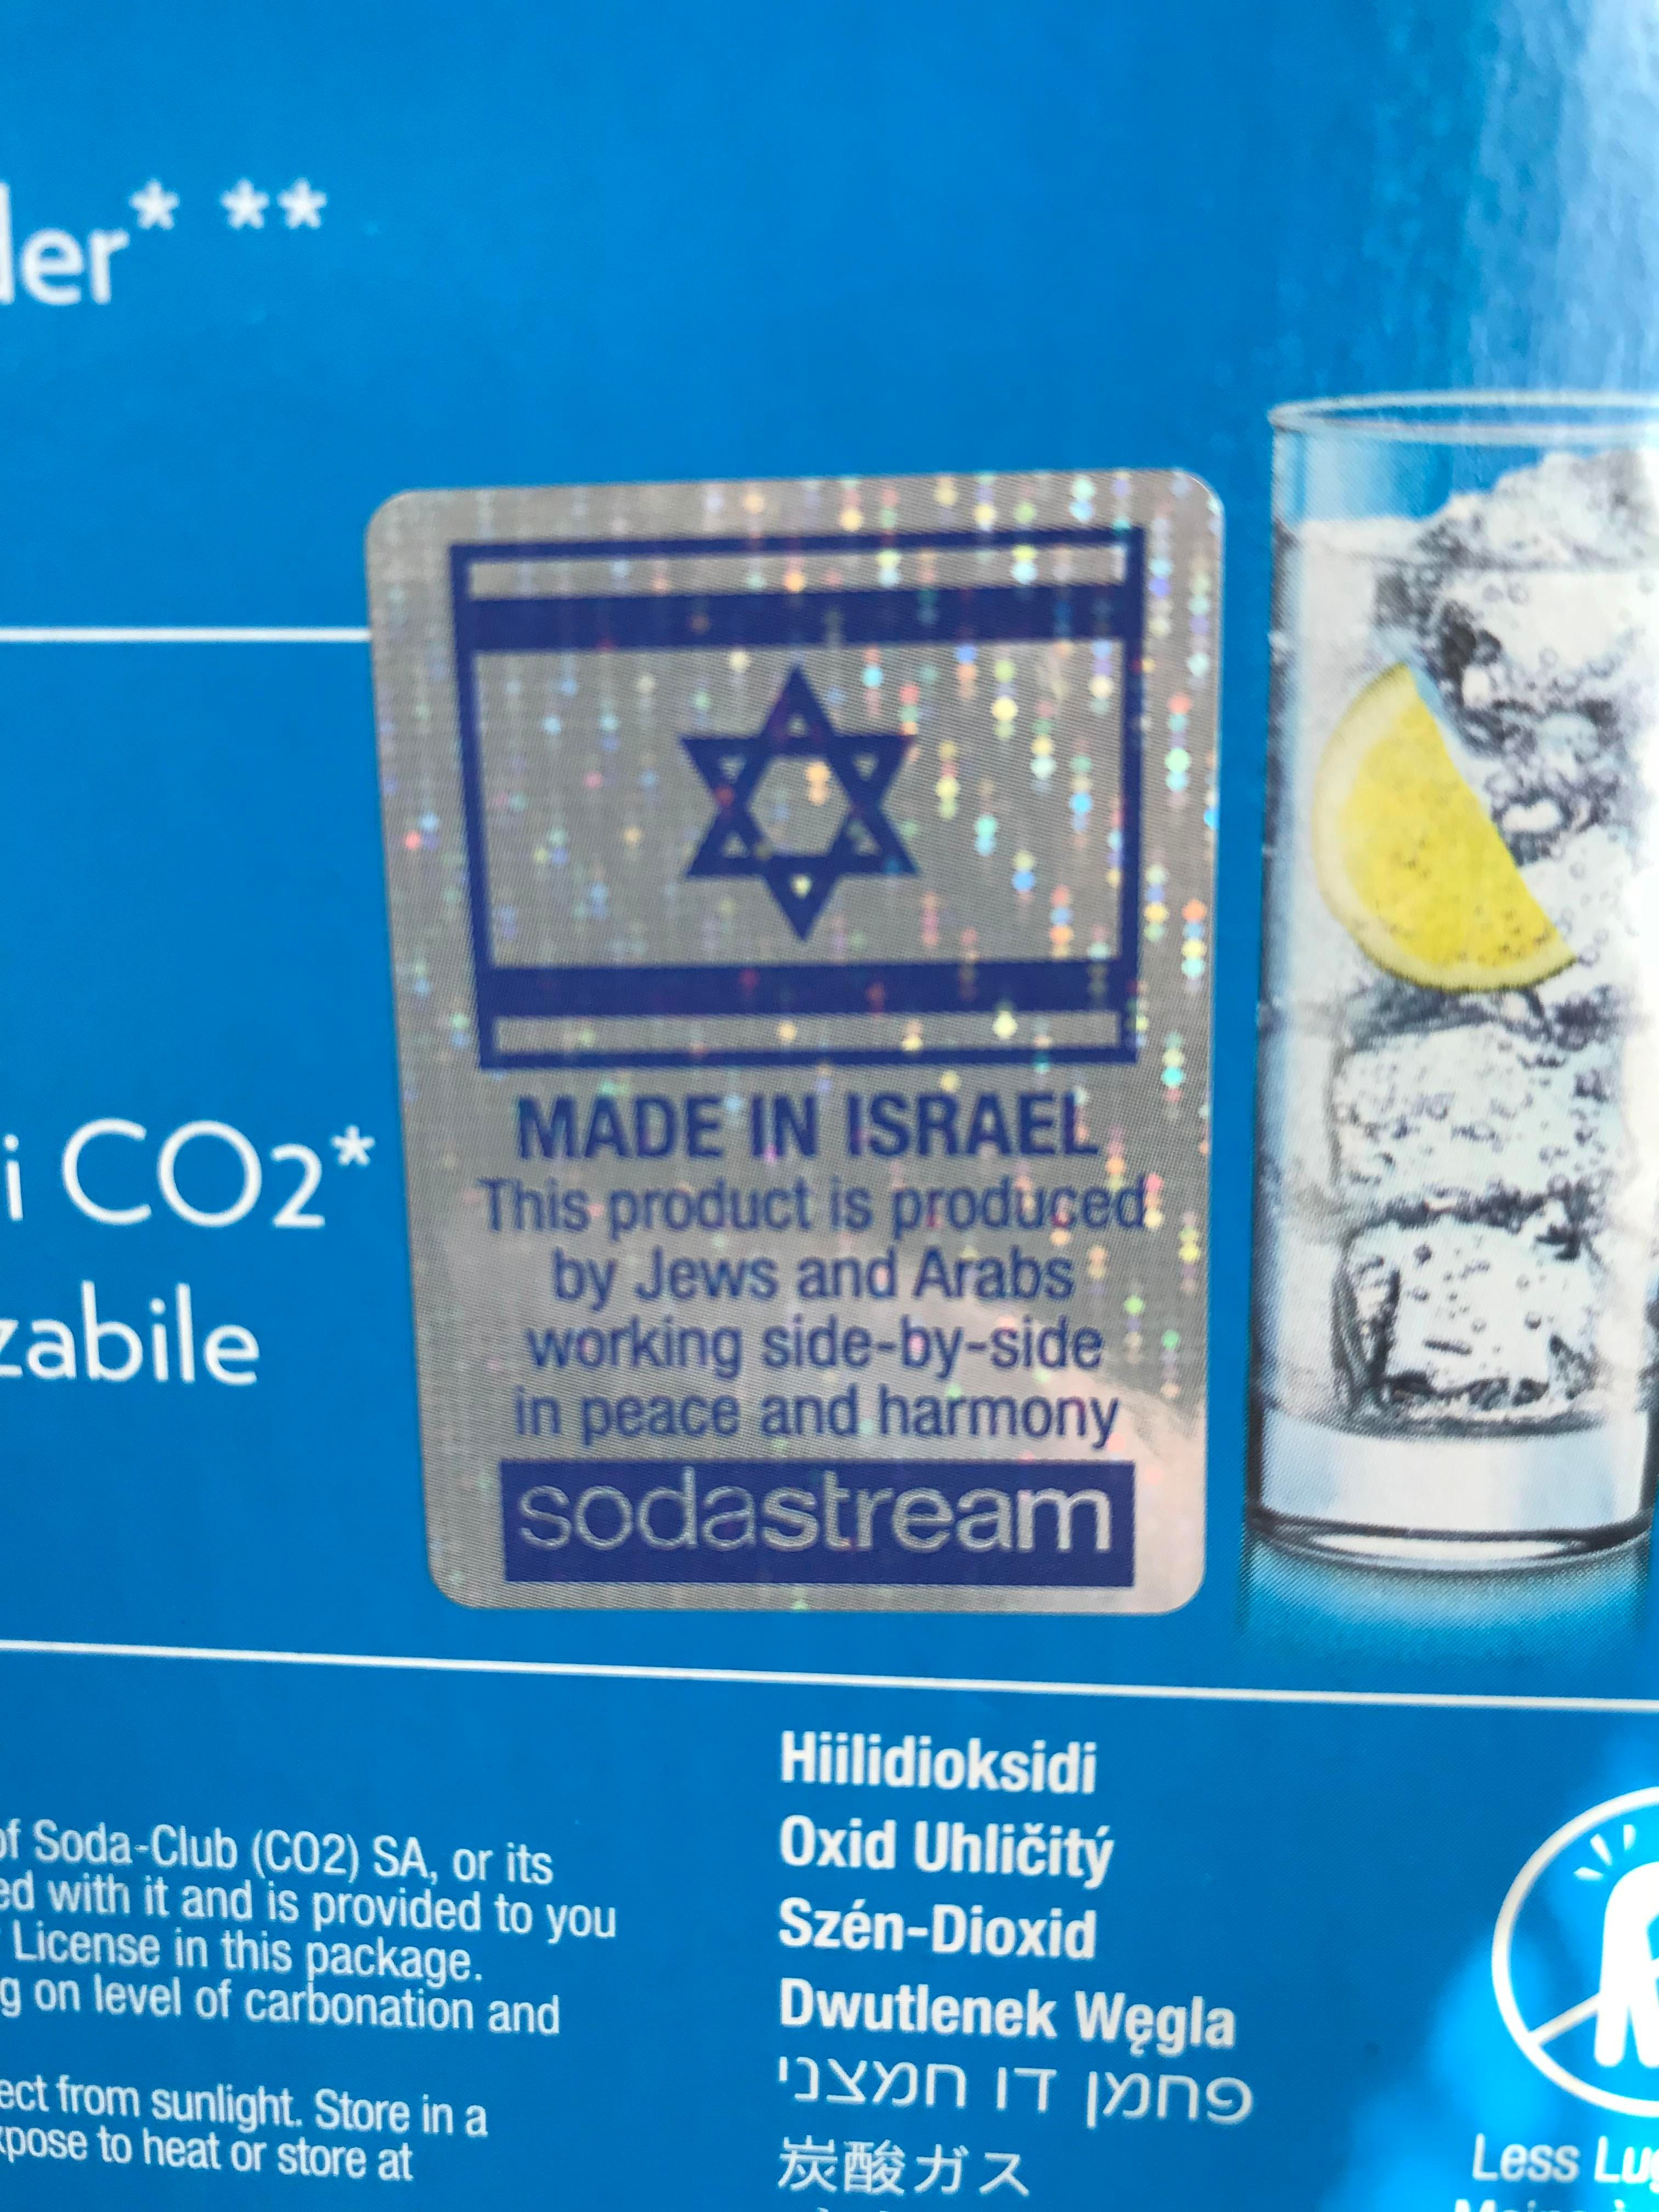 Sodastream Attempts A Re-brand, Focusing On Coexistence photo